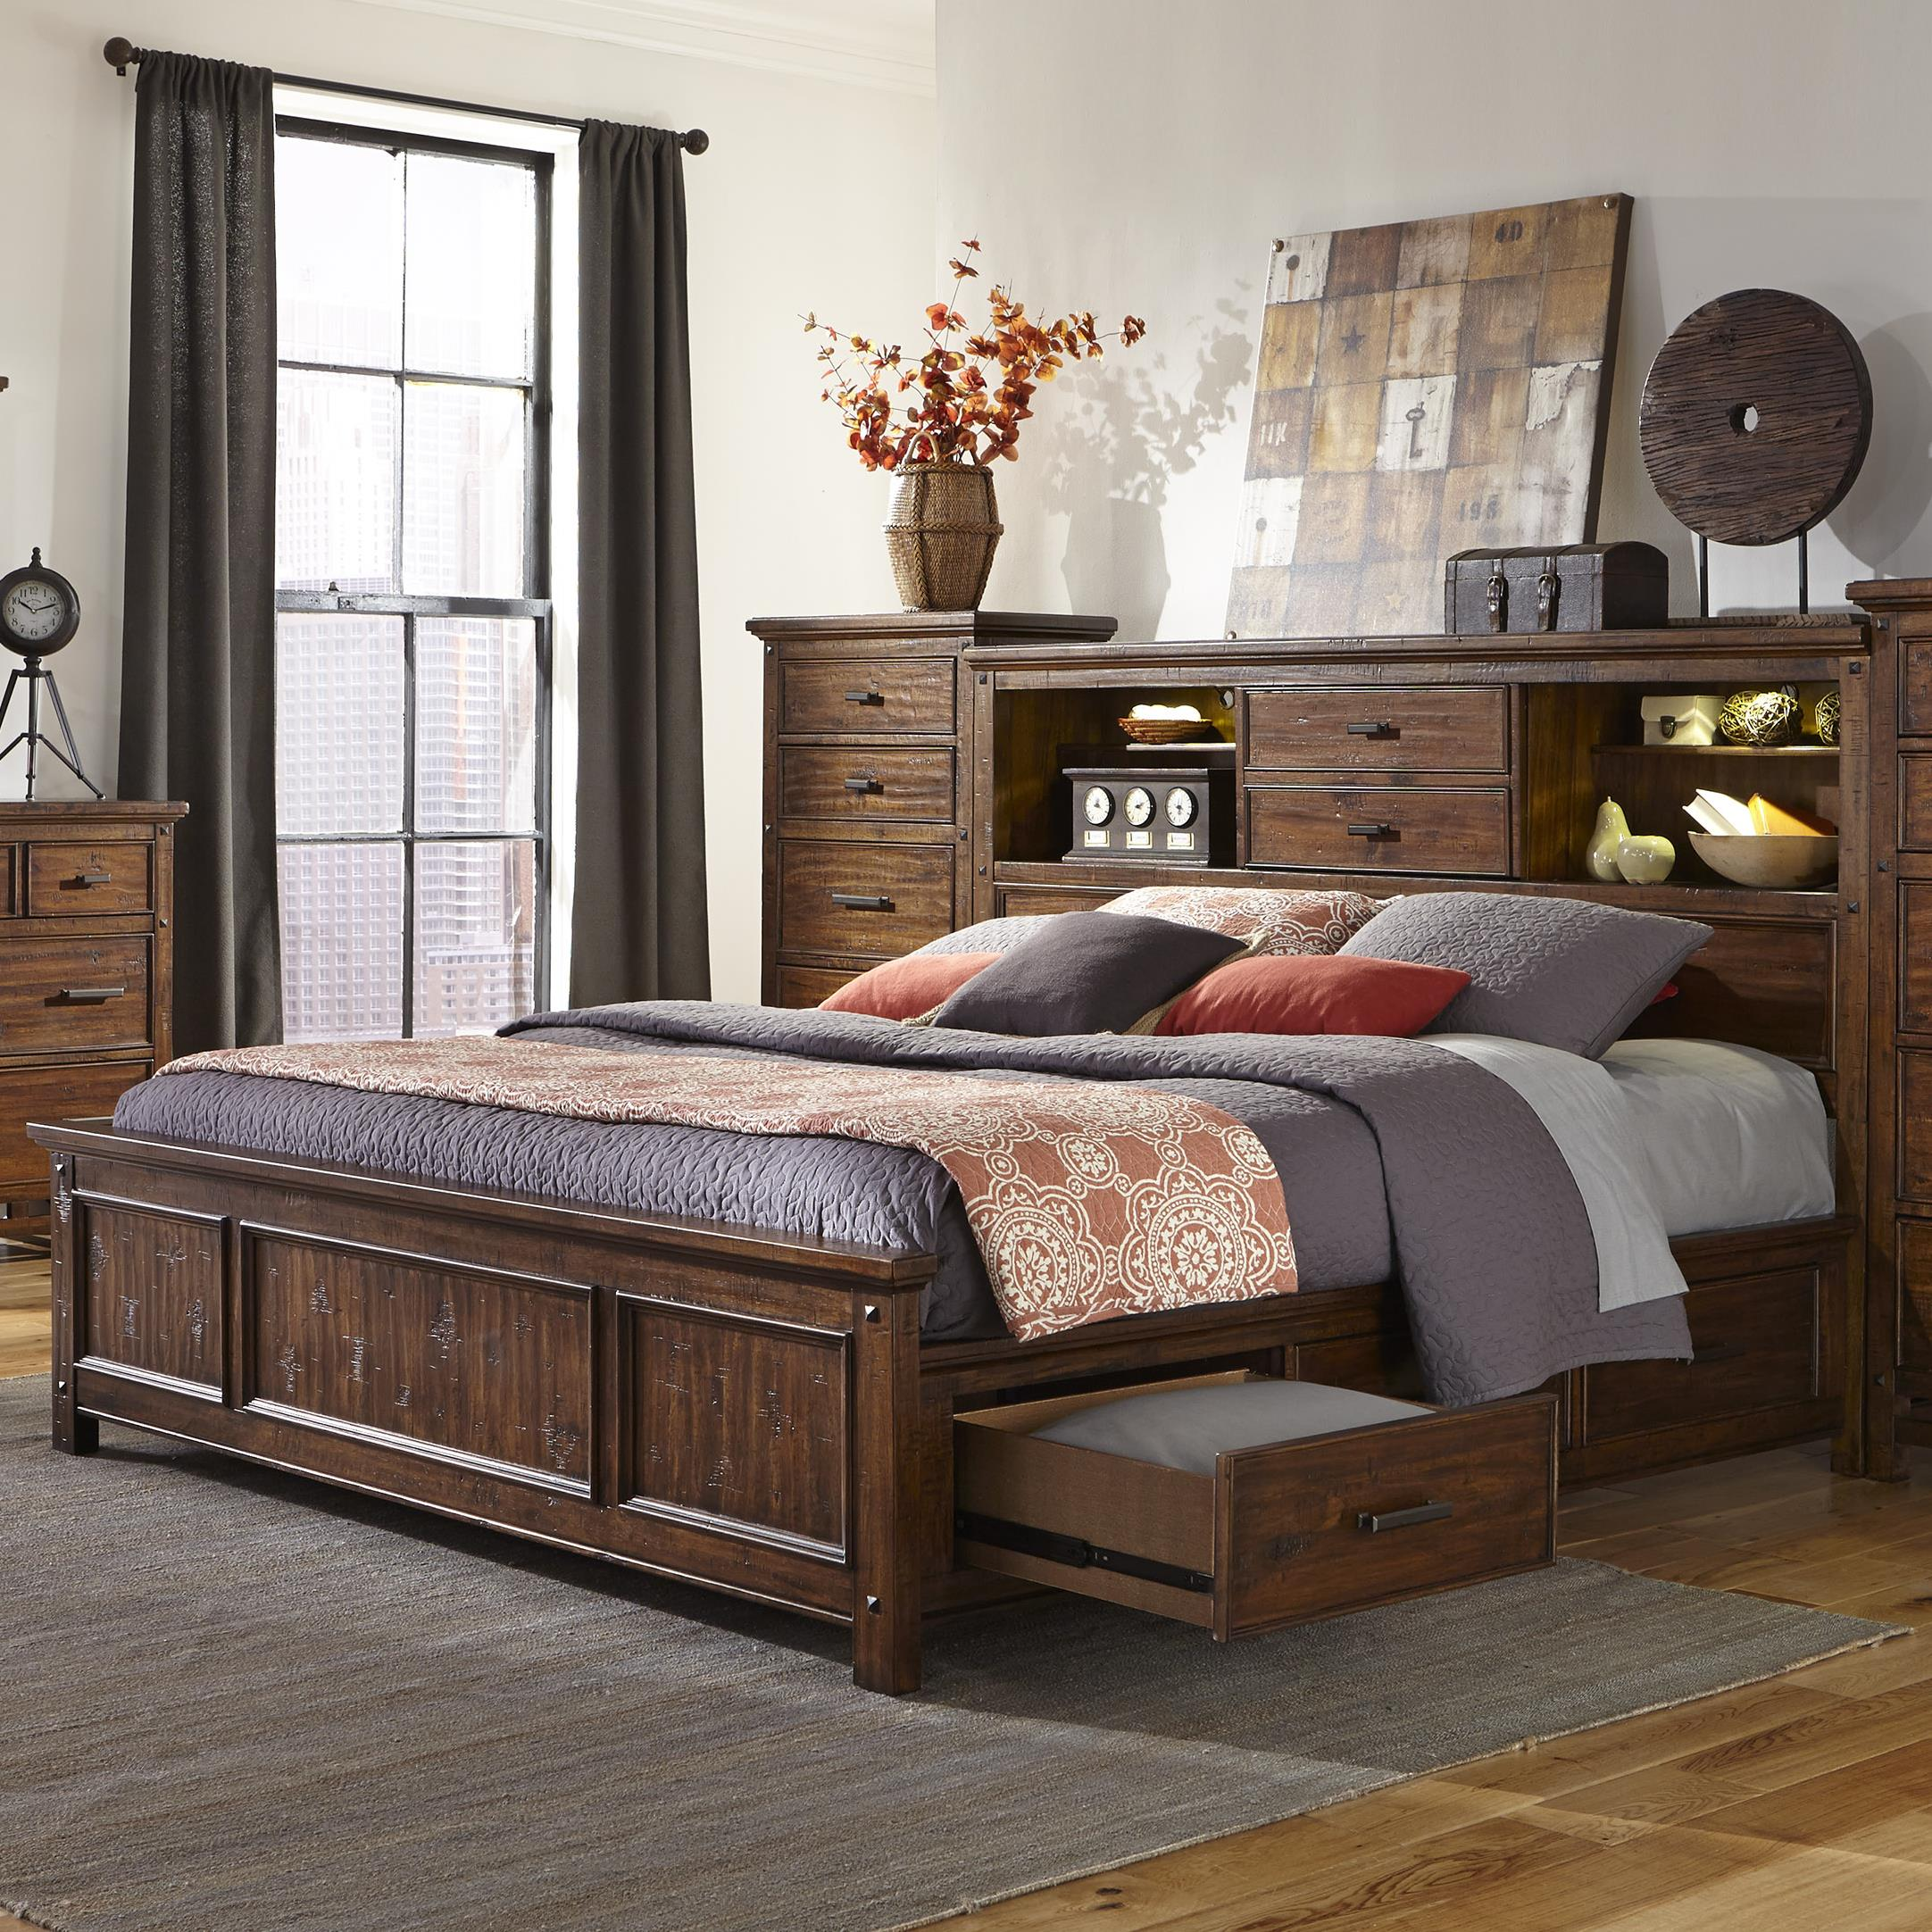 Wolf Creek Queen Bookcase Bed with Storage by Intercon at Story & Lee Furniture